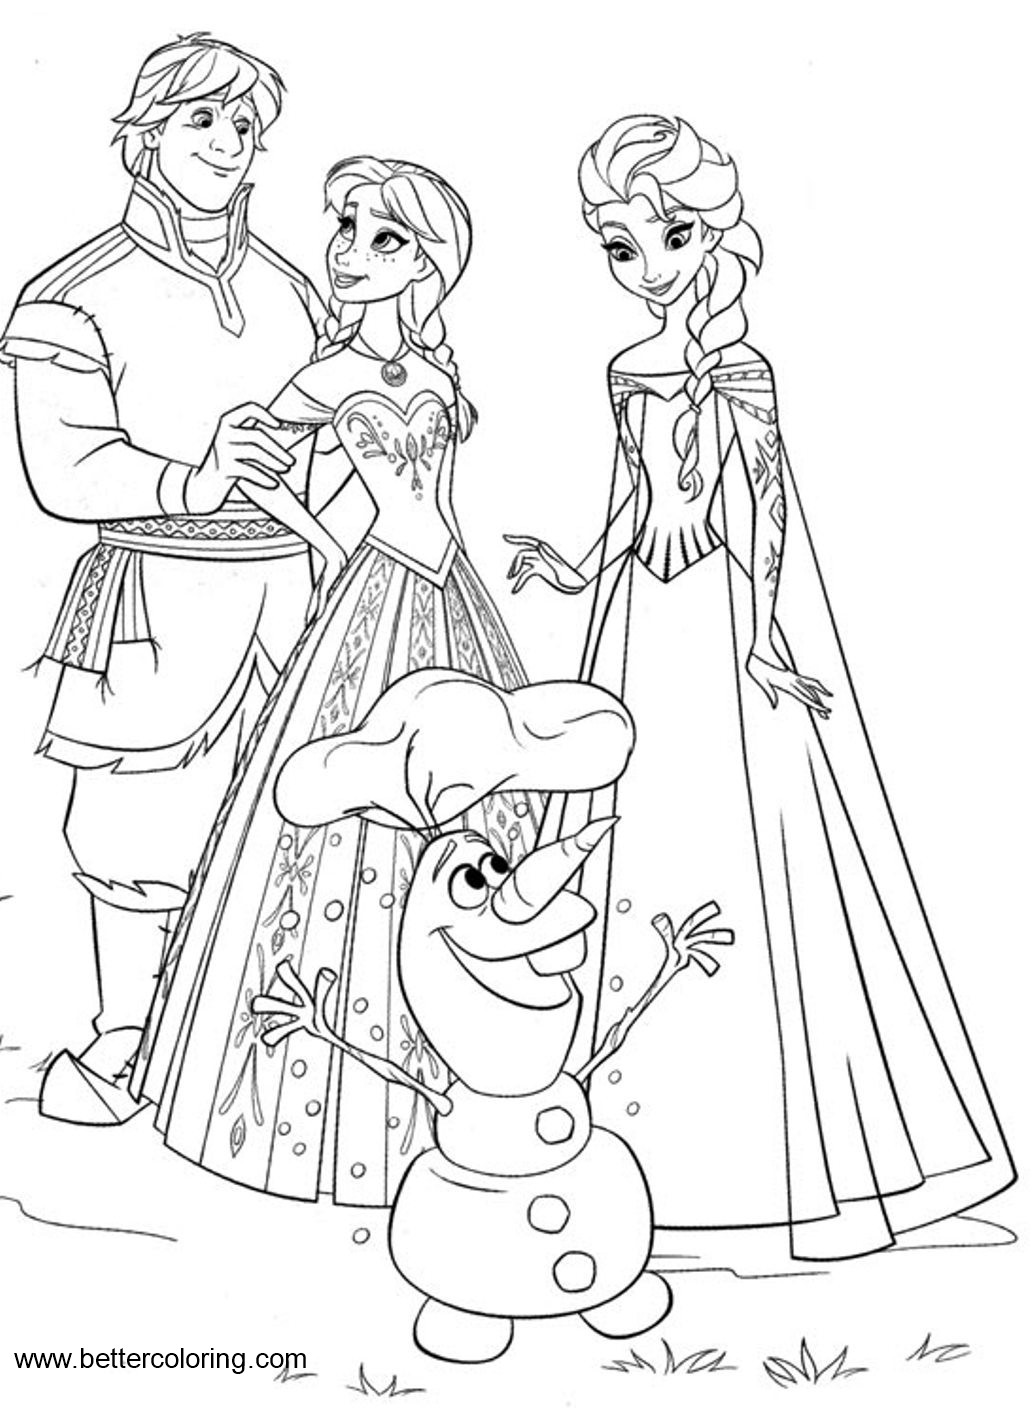 Disney Frozen Characters Coloring Pages - Free Printable Coloring Pages